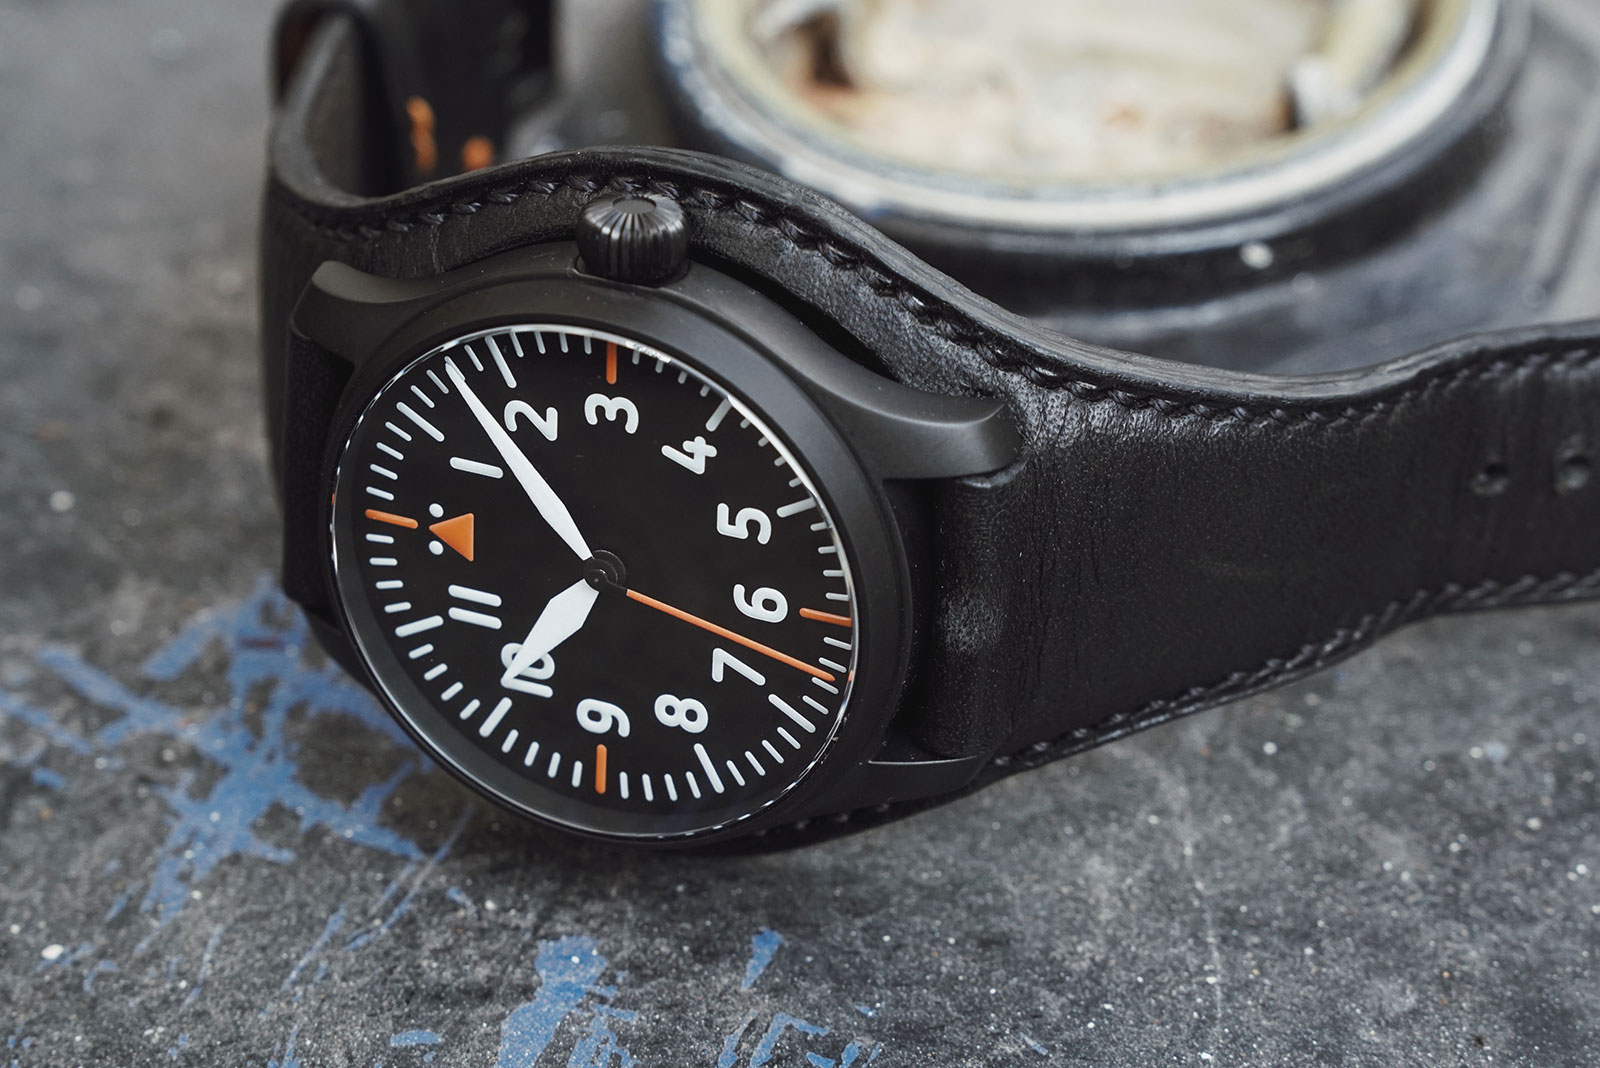 stowa darth pilot raw singapore edition 3